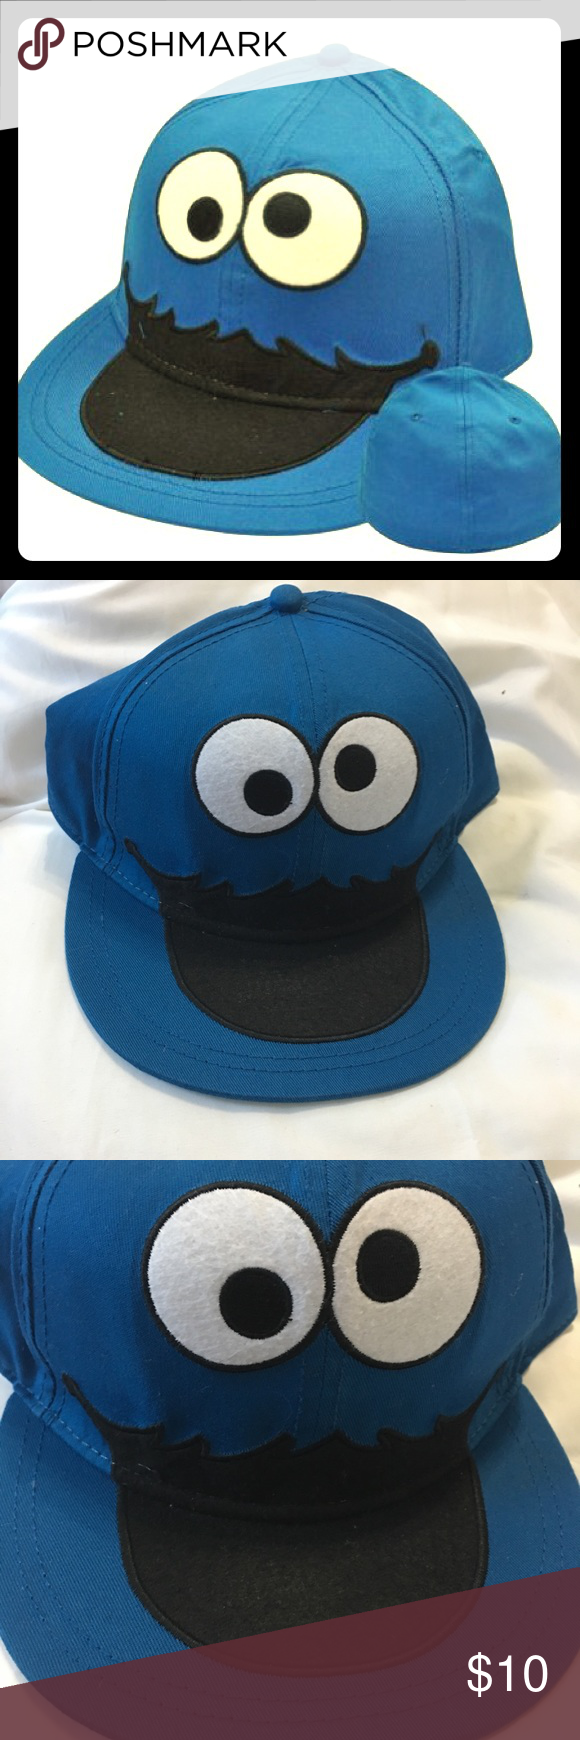 b21b6ebe Cookie Monster Flat Bill Hat Sesame Street Cookie Monster Flat Bill ...